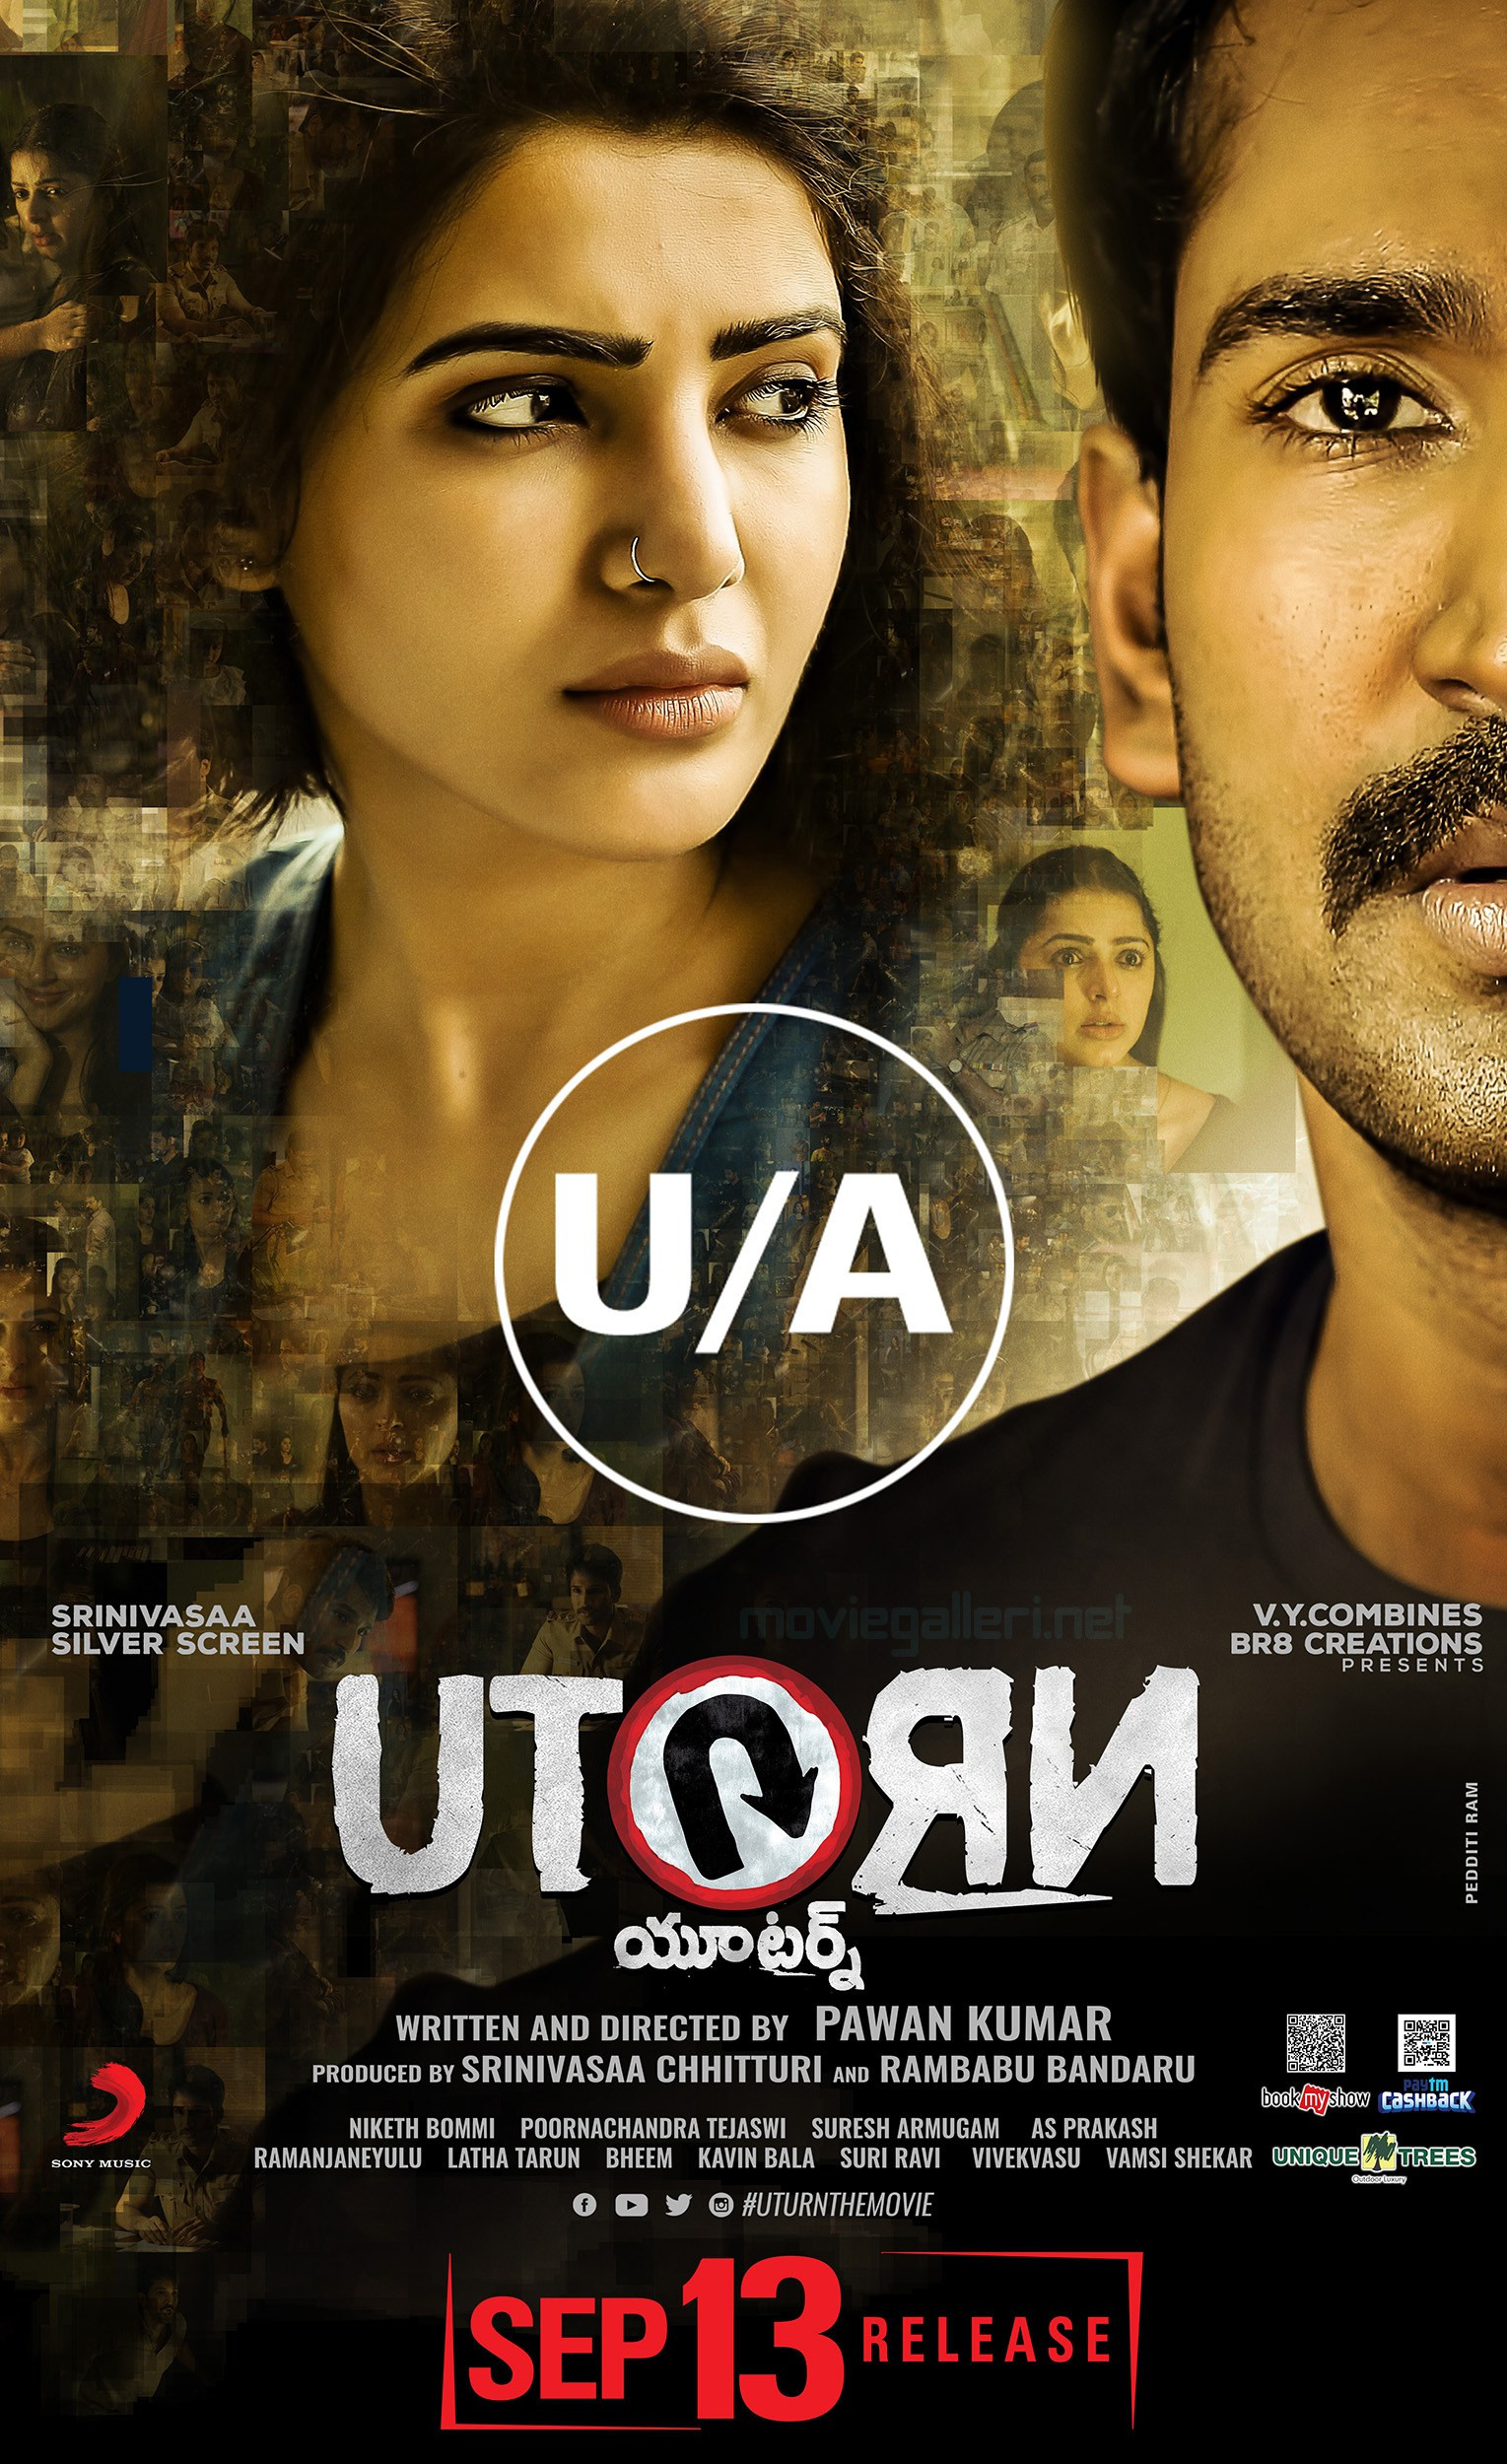 Samantha 'U Turn' completes censor with UA certificate